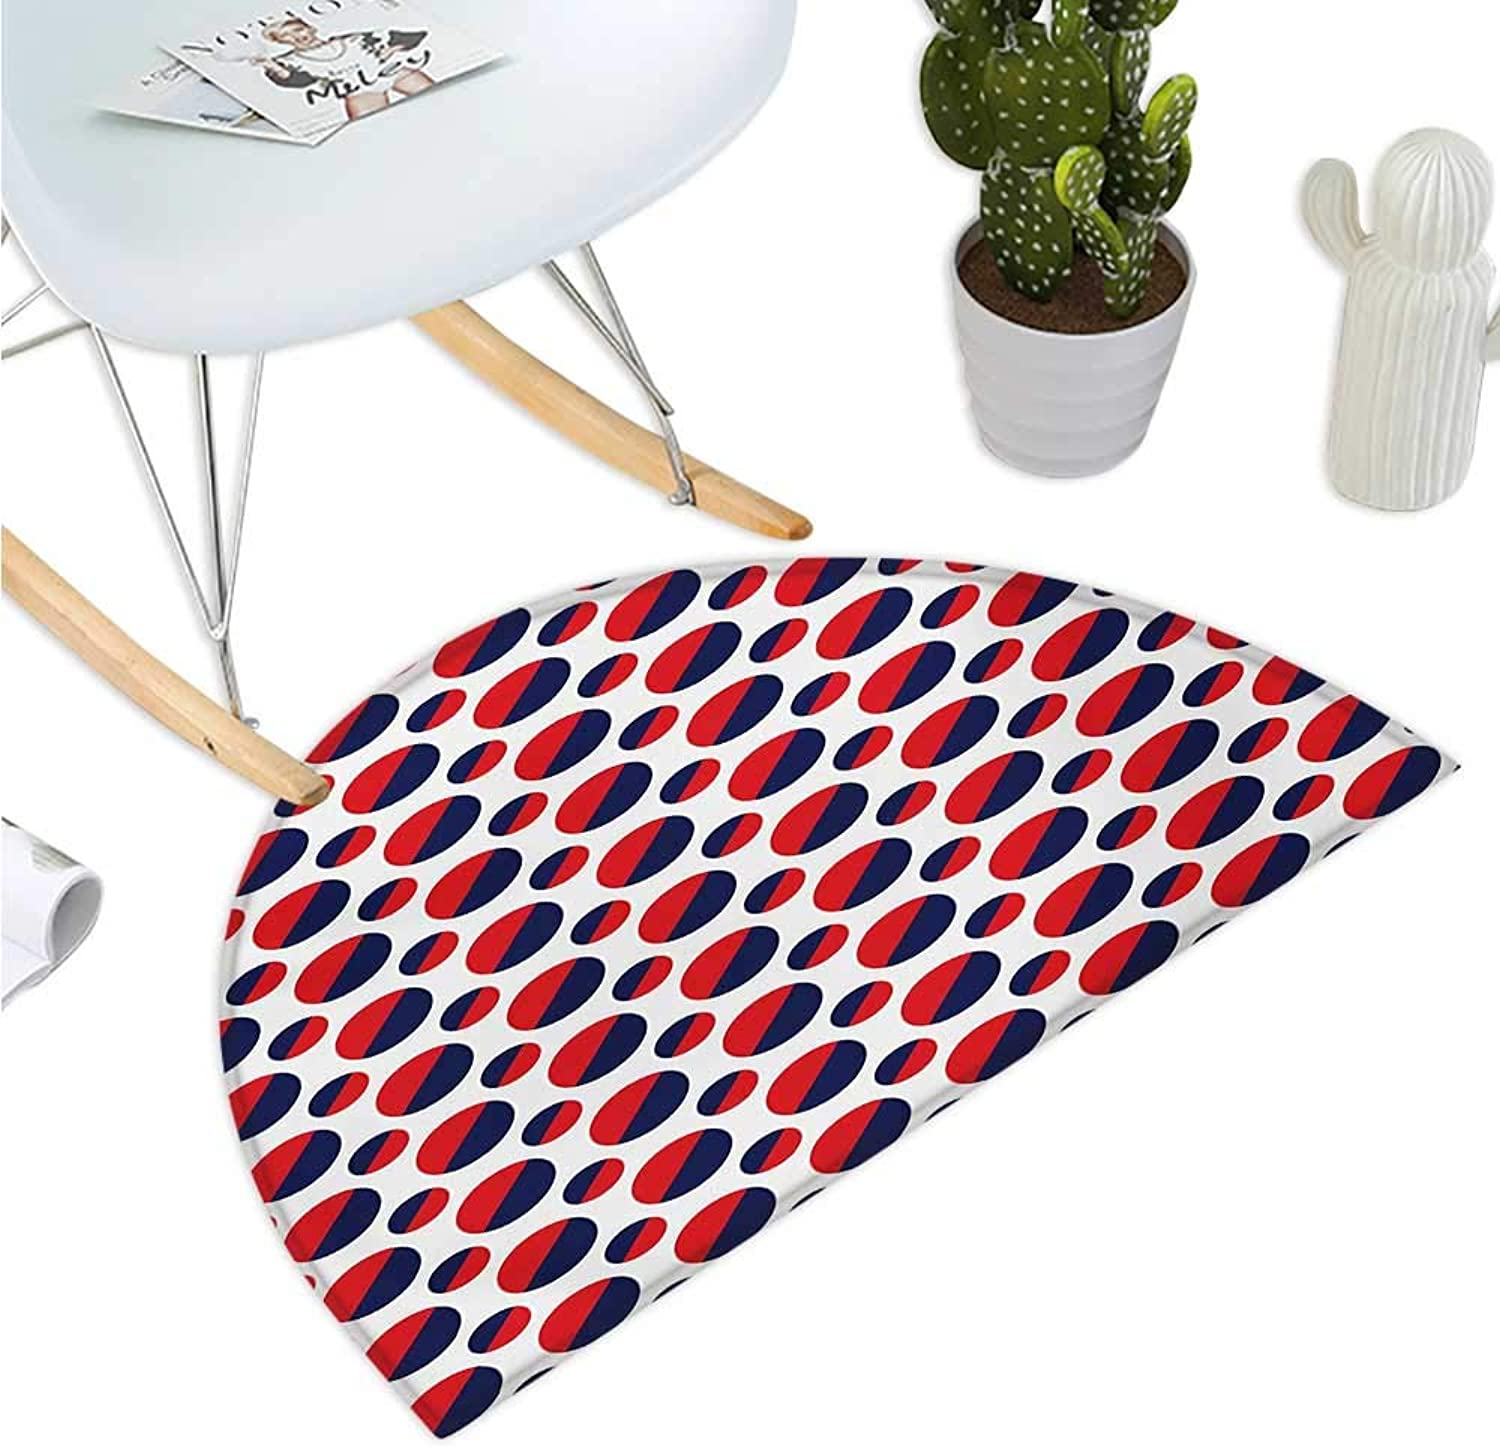 Geometric Semicircle Doormat Abstract colorful Figures with Half Circles Rounds Artwork Image Entry Door Mat H 35.4  xD 53.1  Navy bluee Red and White